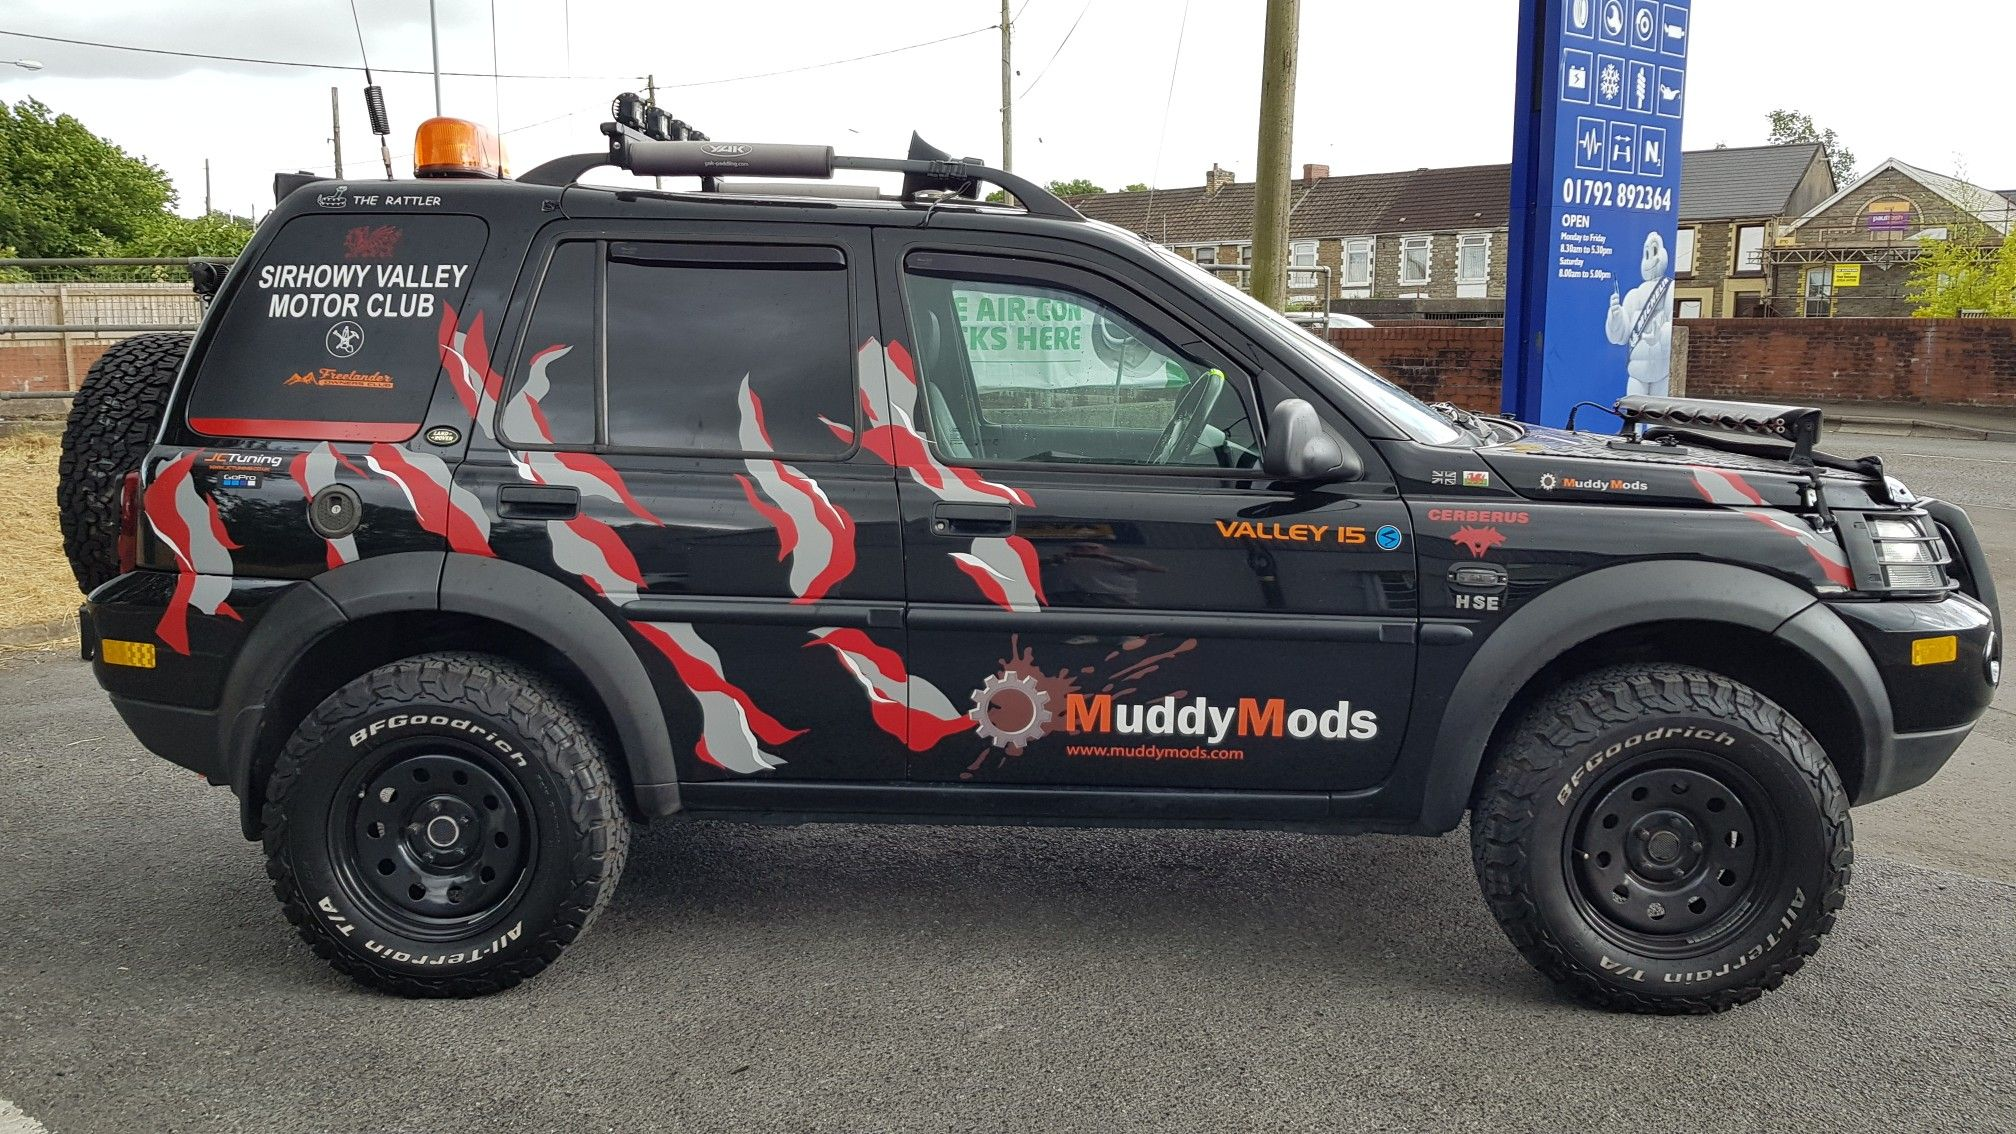 New Colours For Cerberus Land Rover Land Rover Freelander Overland Vehicles